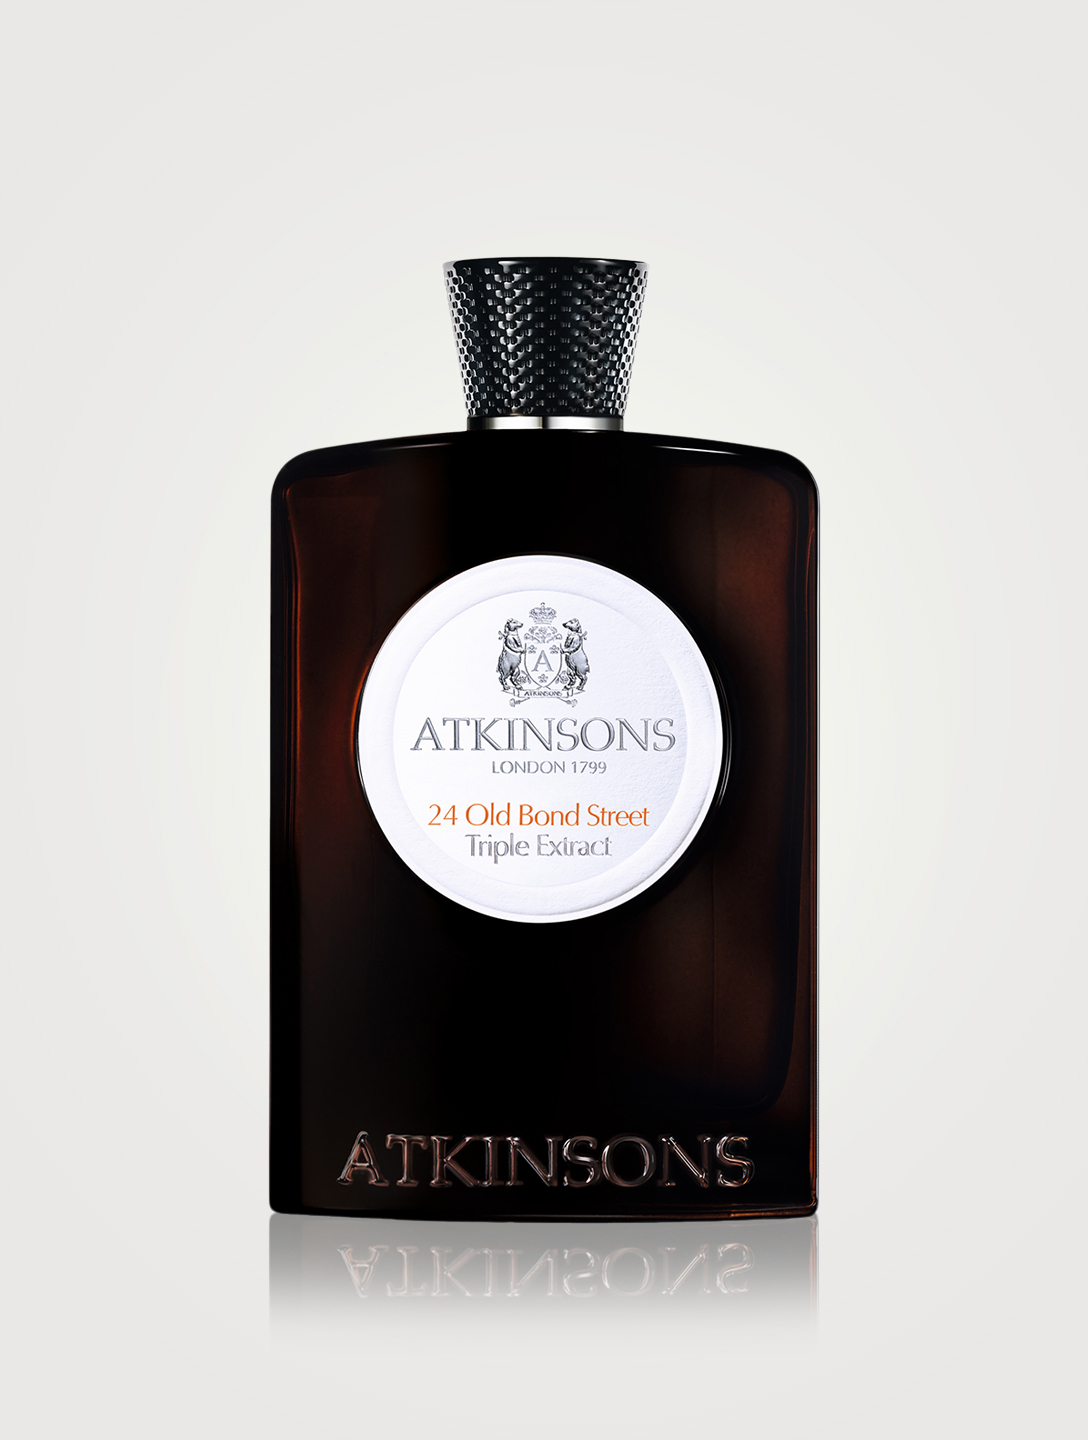 ATKINSONS 24 Old Bond Street Triple Extract Eau de Cologne Beauty